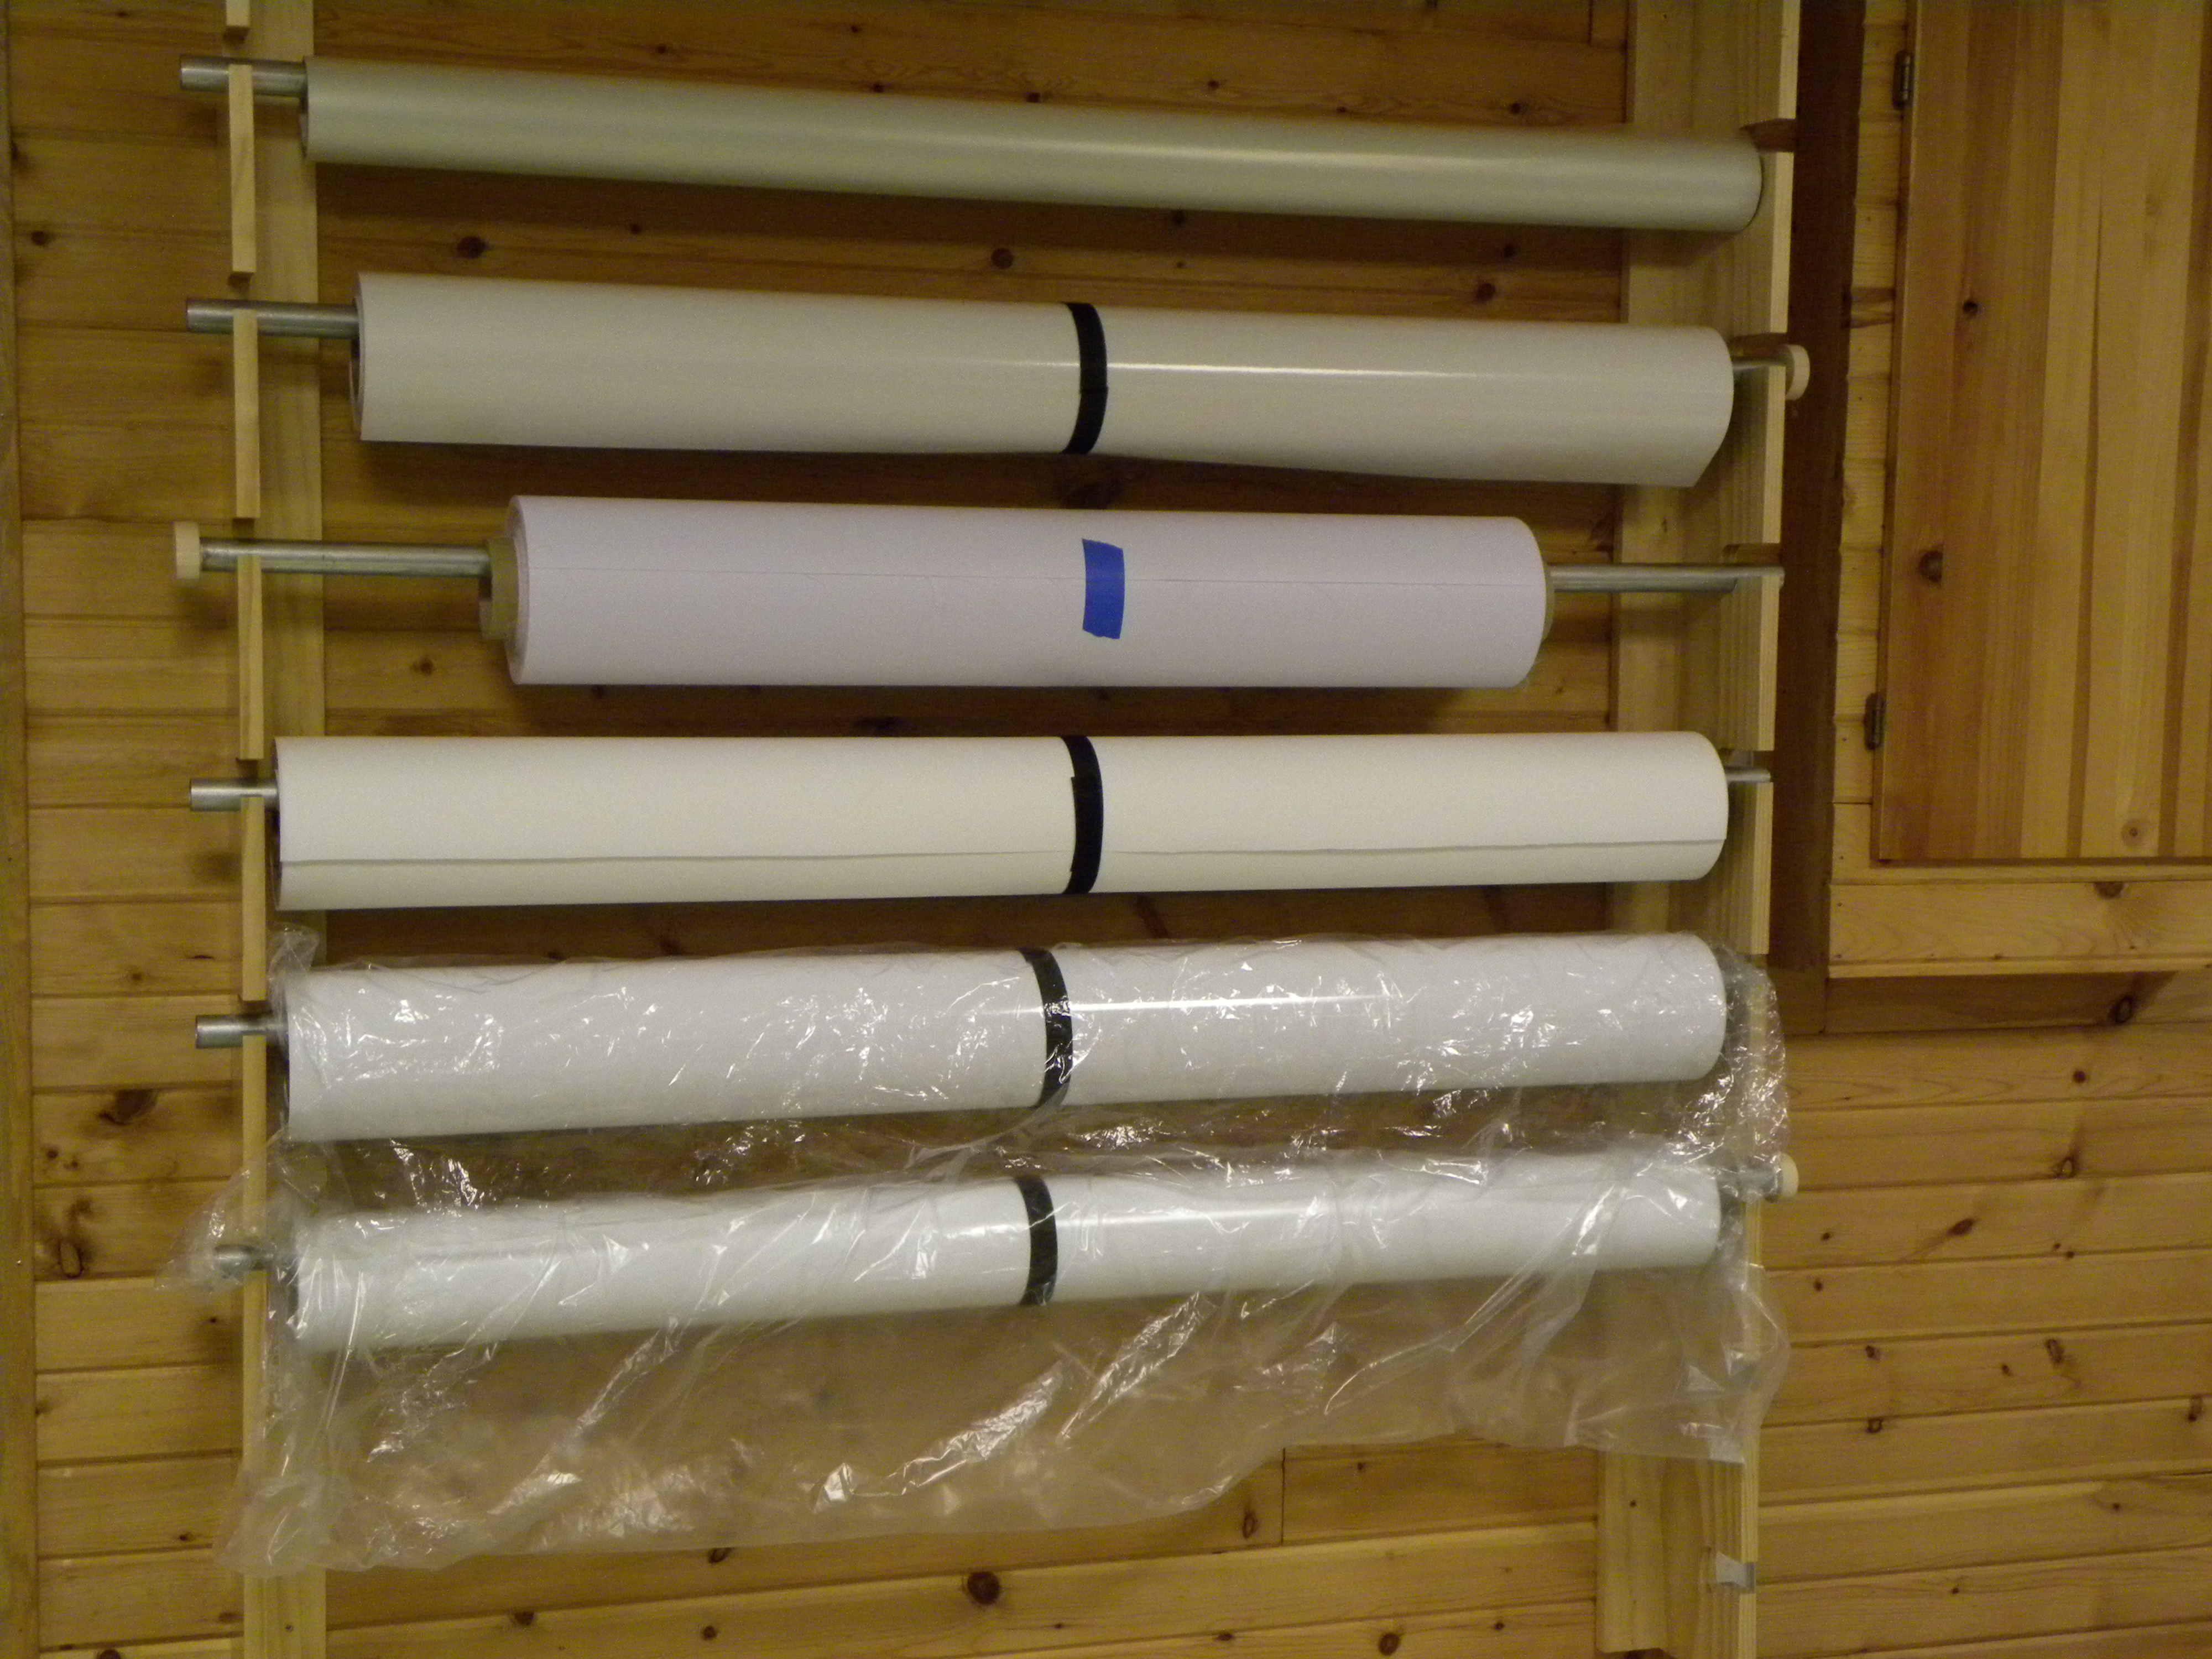 image about Printable Vinyl Rolls named Storage Designs For Vinyl and Printable Media -